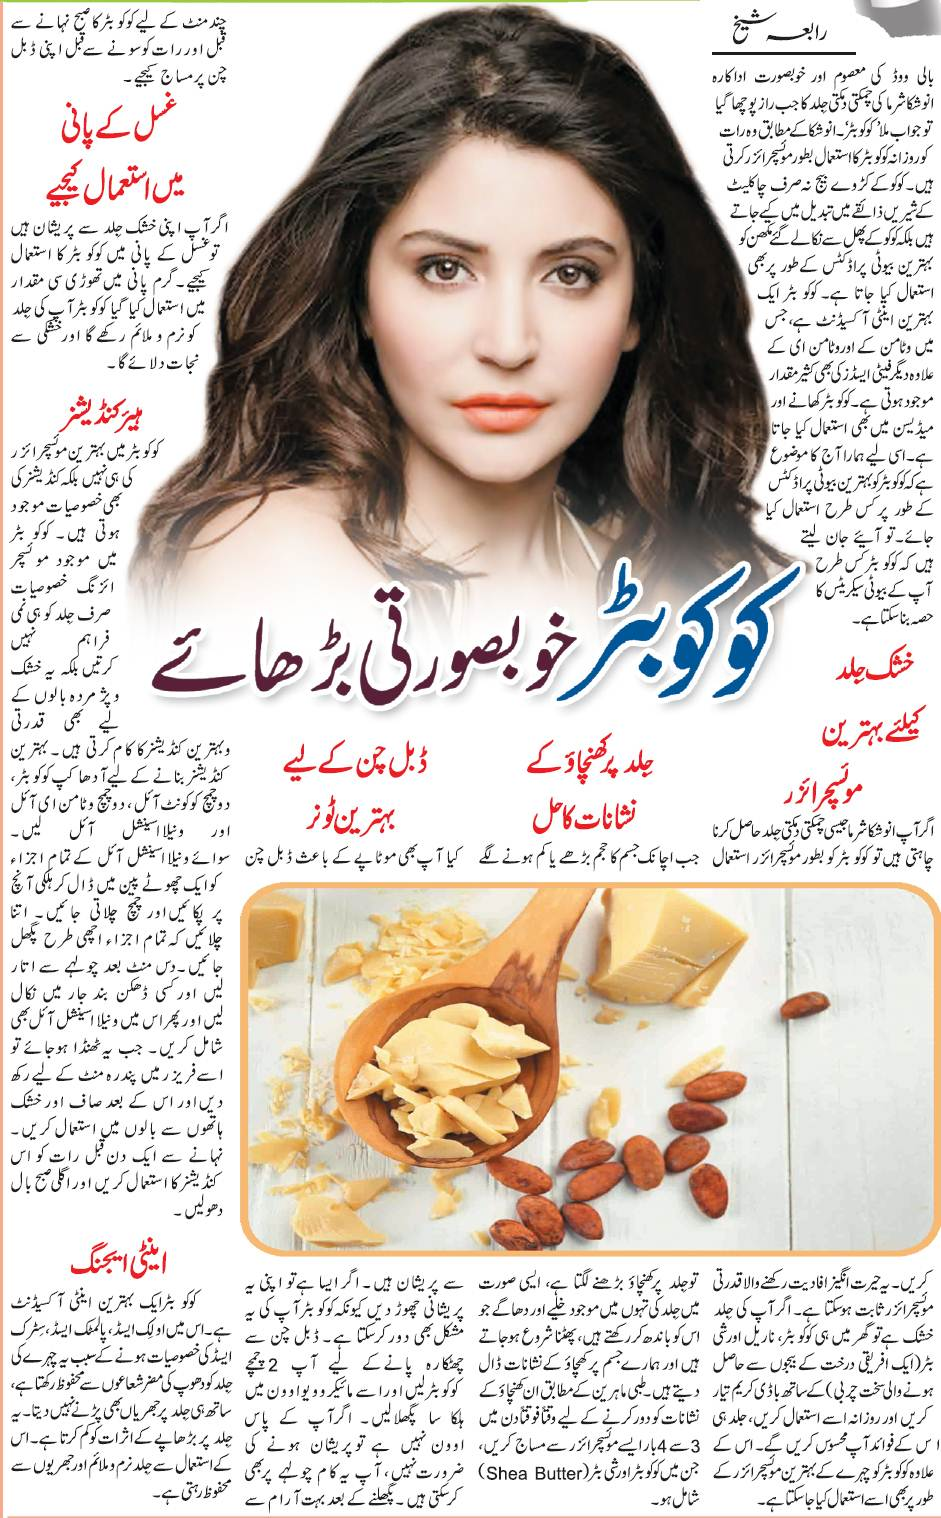 Cocoa Butter Uses, Products, Health & Beauty Benefits (Urdu & English)